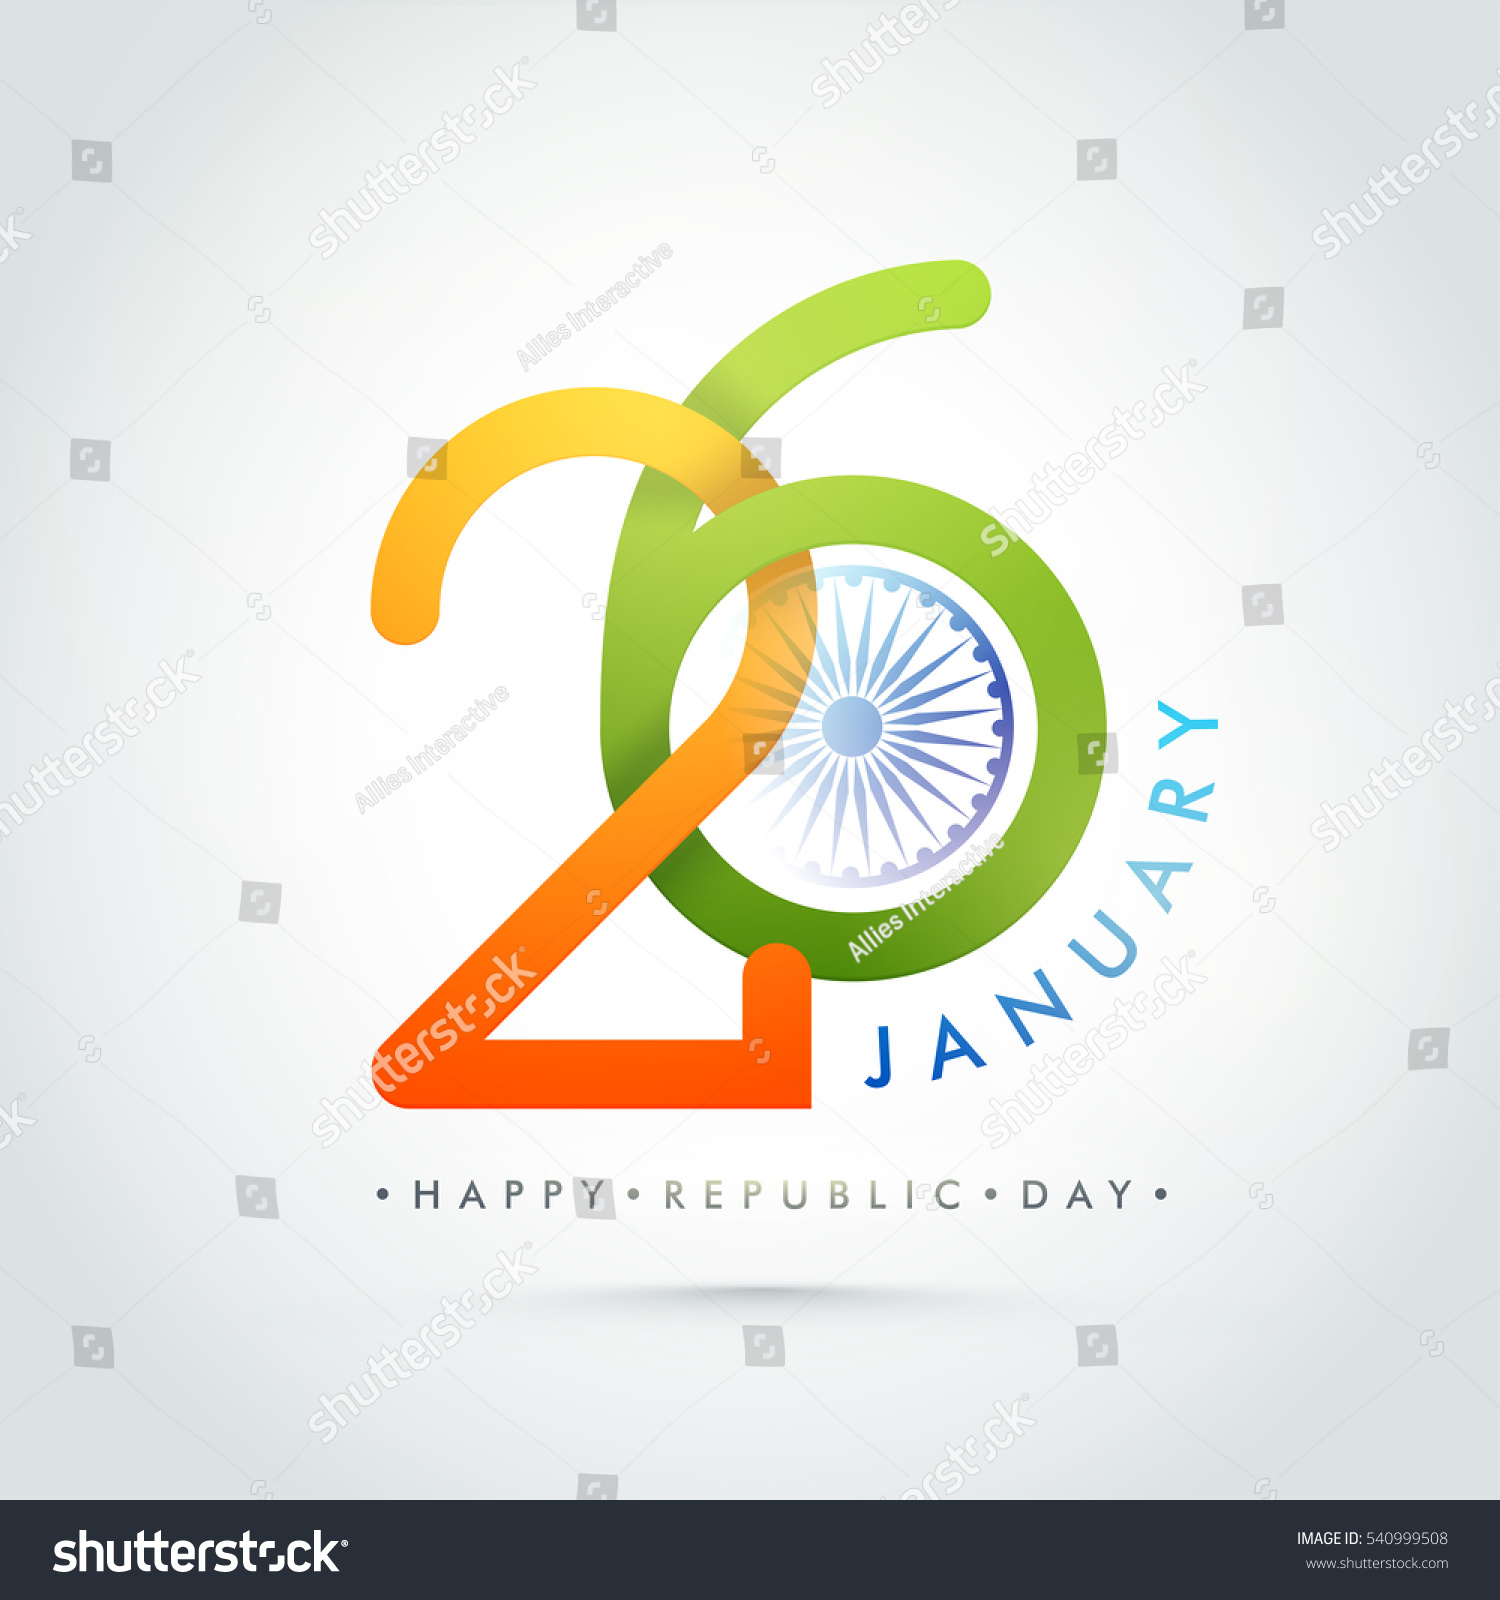 Colors website ashoka - Creative Indian Flag Colors Text 26 January With Ashoka Wheel Happy Republic Day Celebration Poster